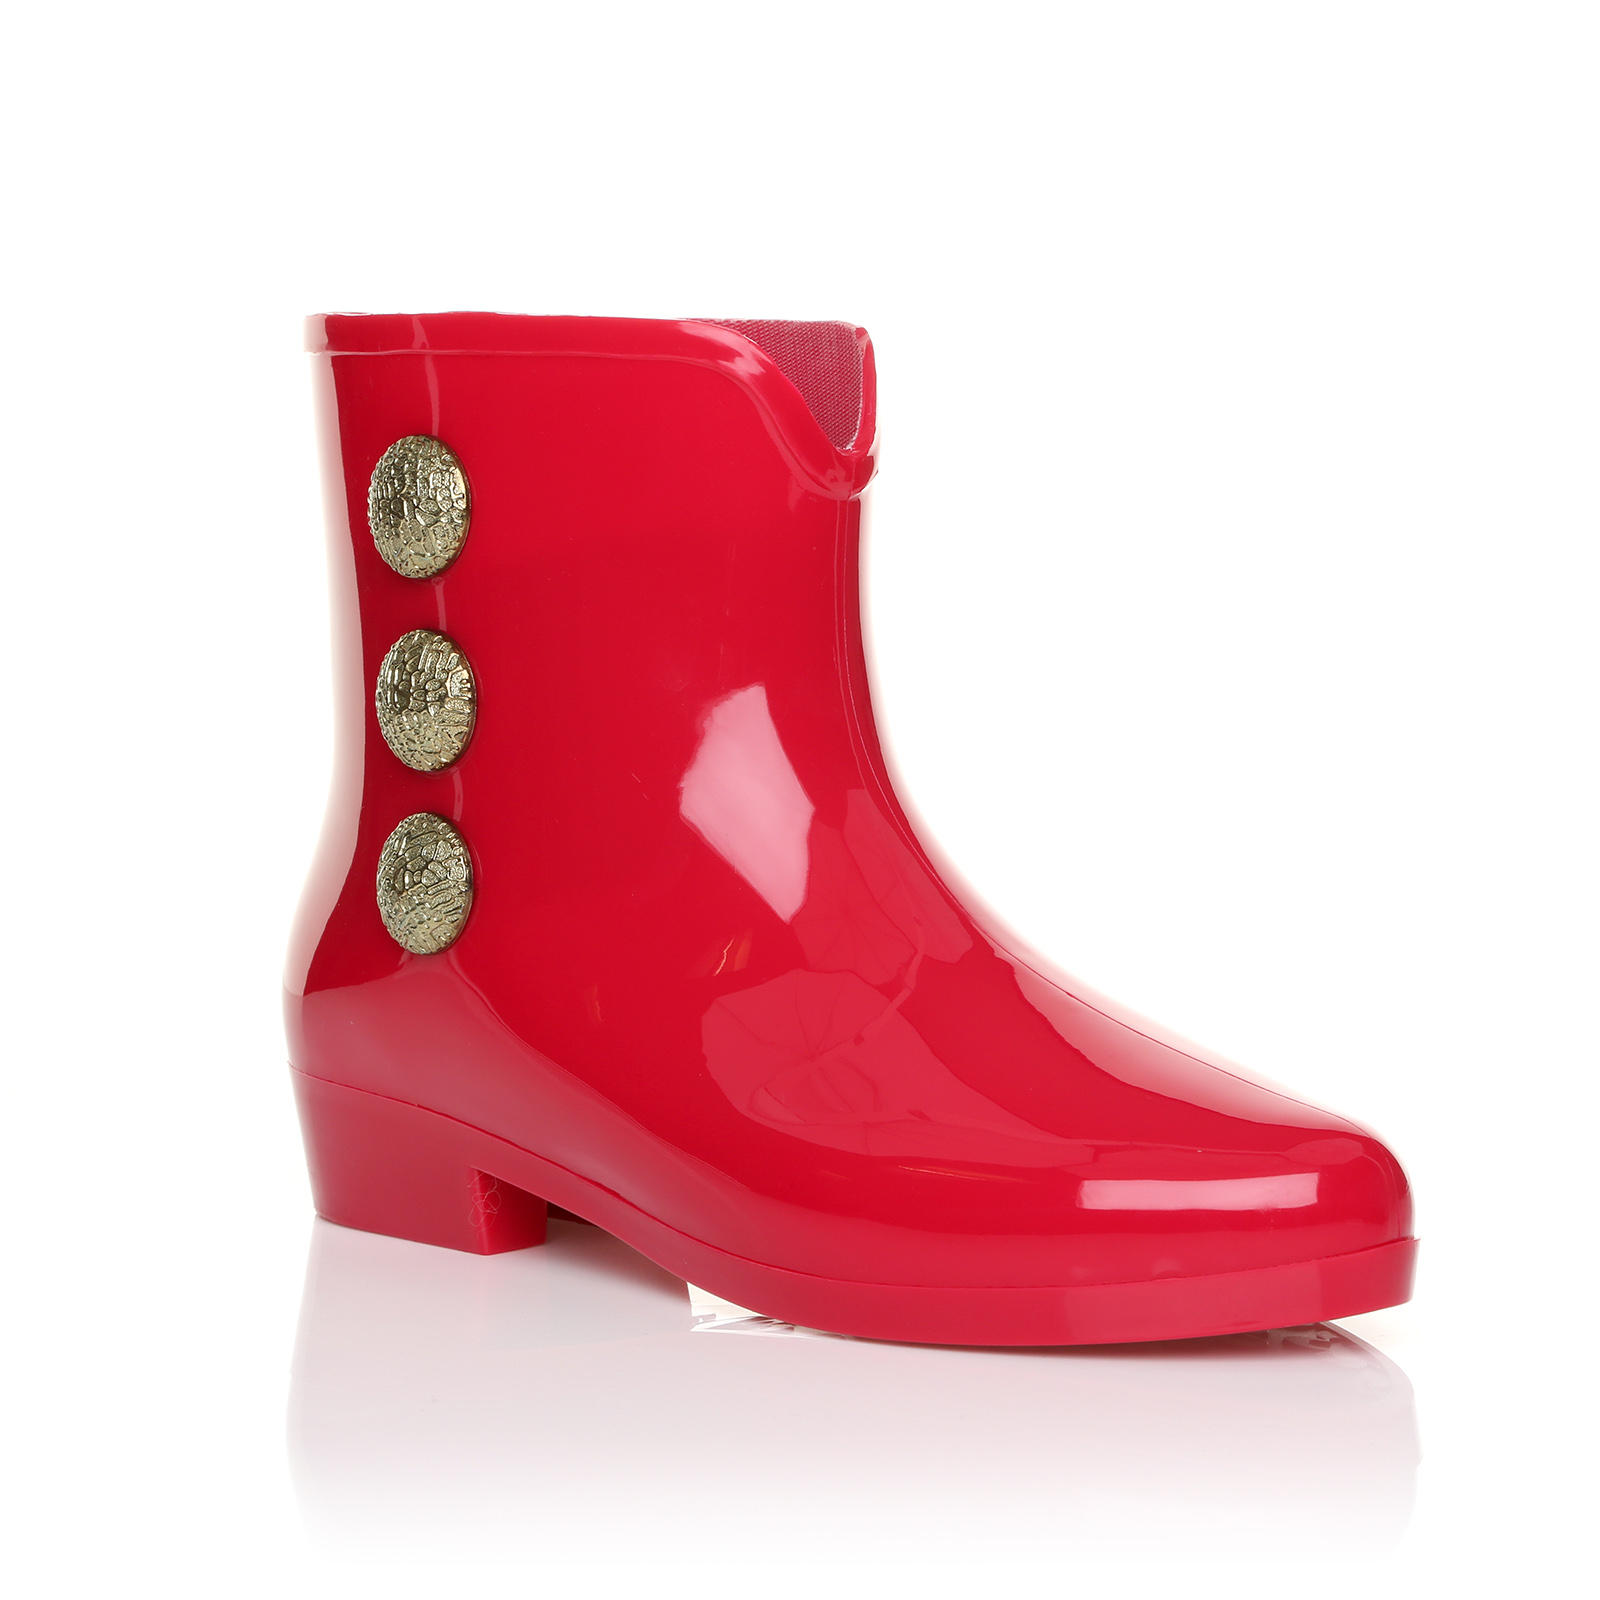 Womens ankle garden jelly wellie wellington rain ladies for Garden boots for women